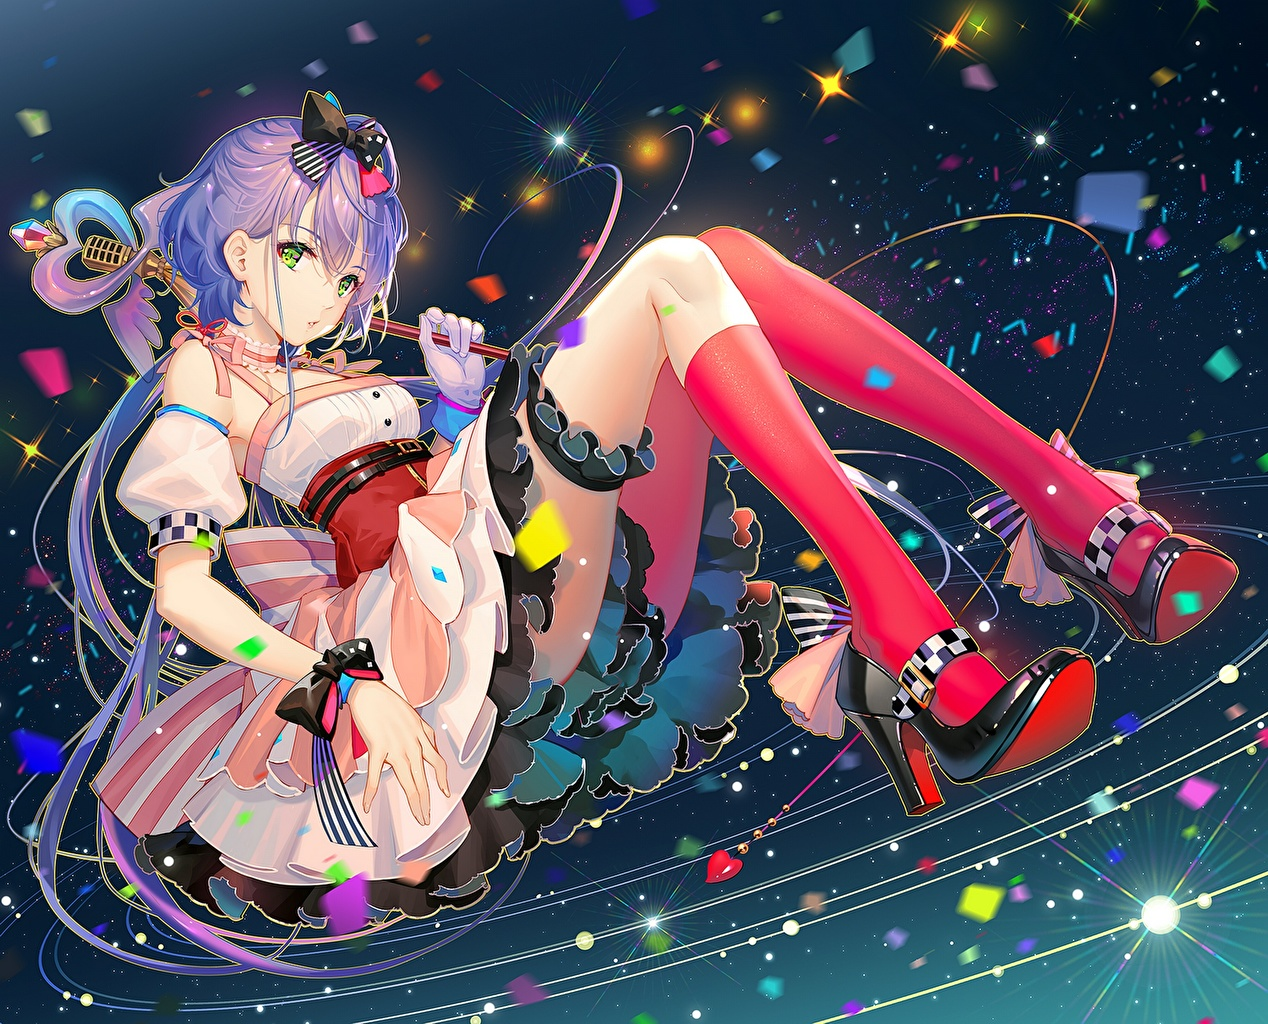 Photos Vocaloid Knee highs Luo Tianyi Anime Legs Sitting sit